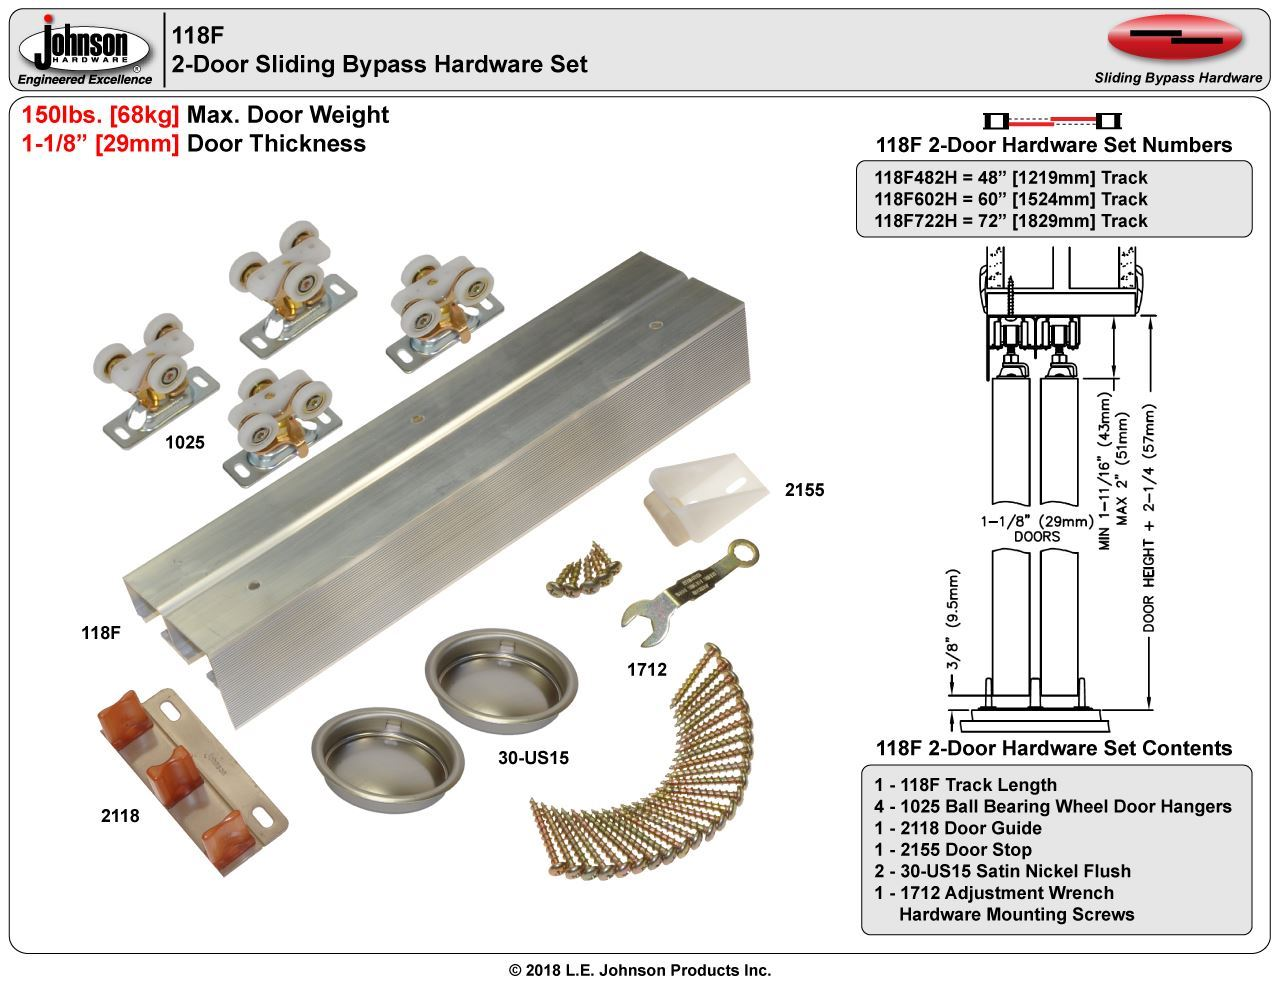 Door 2 Series 1 Bypass Track and Hardware 60 inch